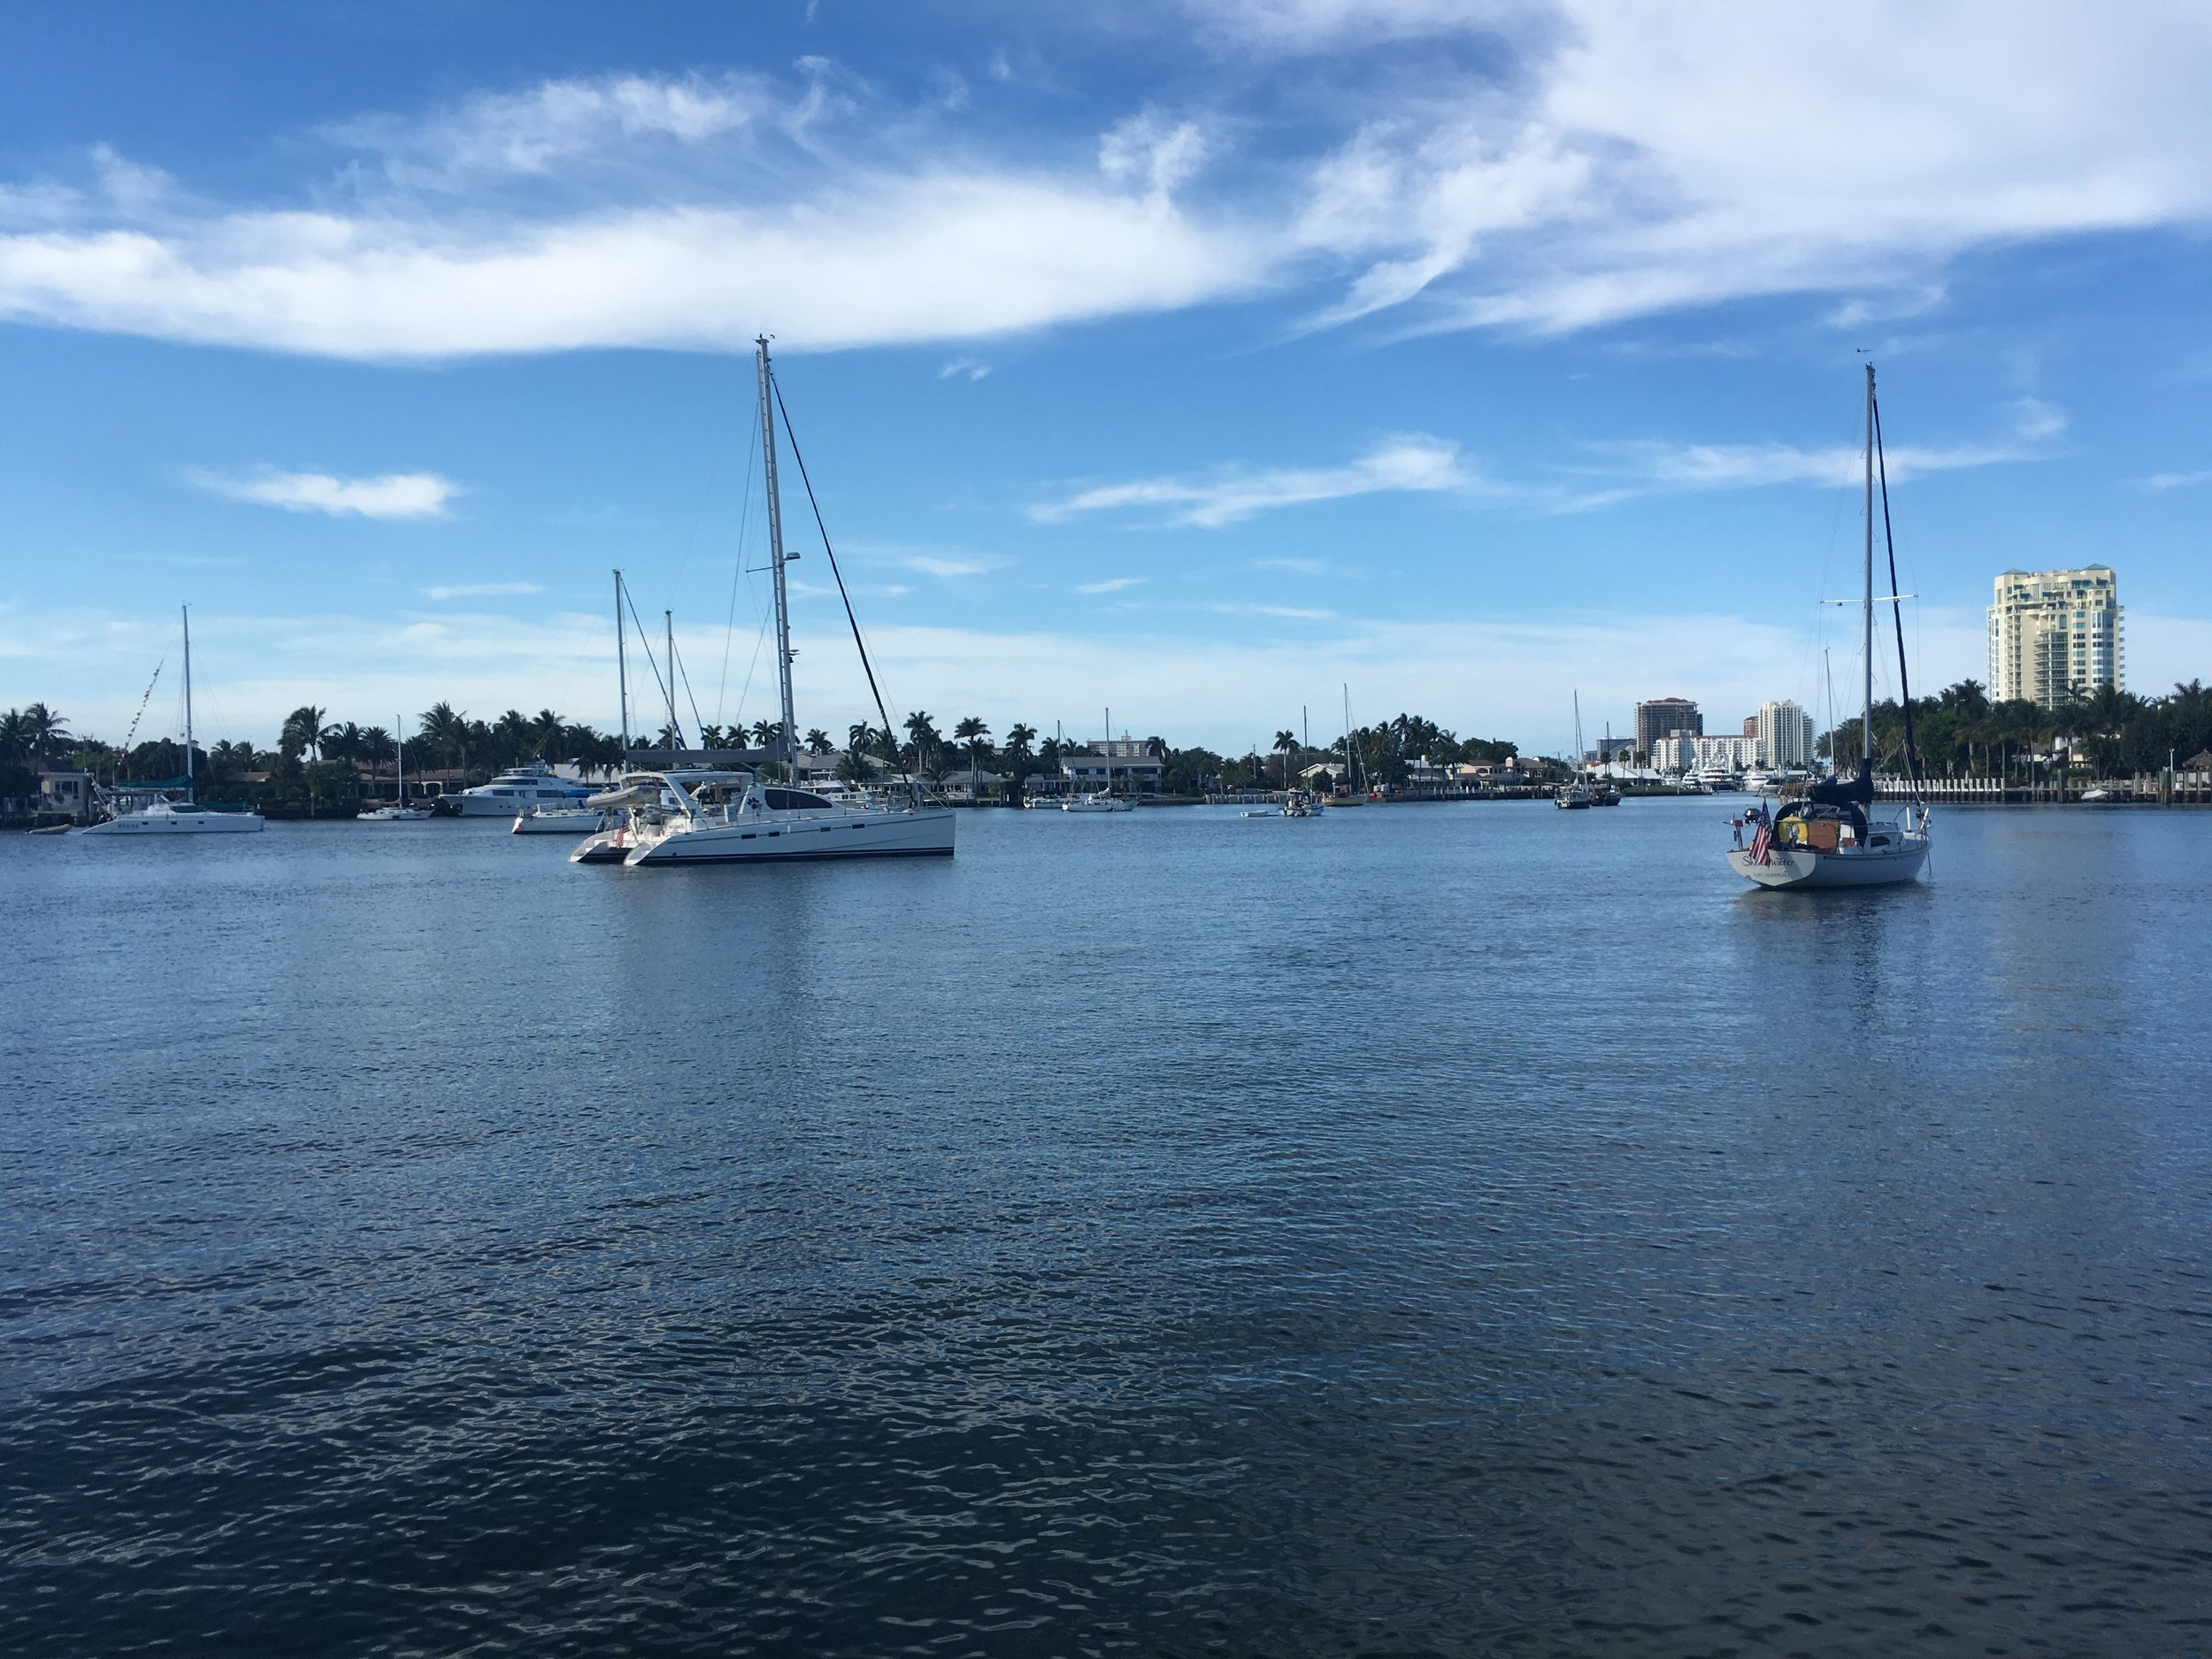 Our Fort Lauderdale anchorage was much more urban and congested than our previous anchorages